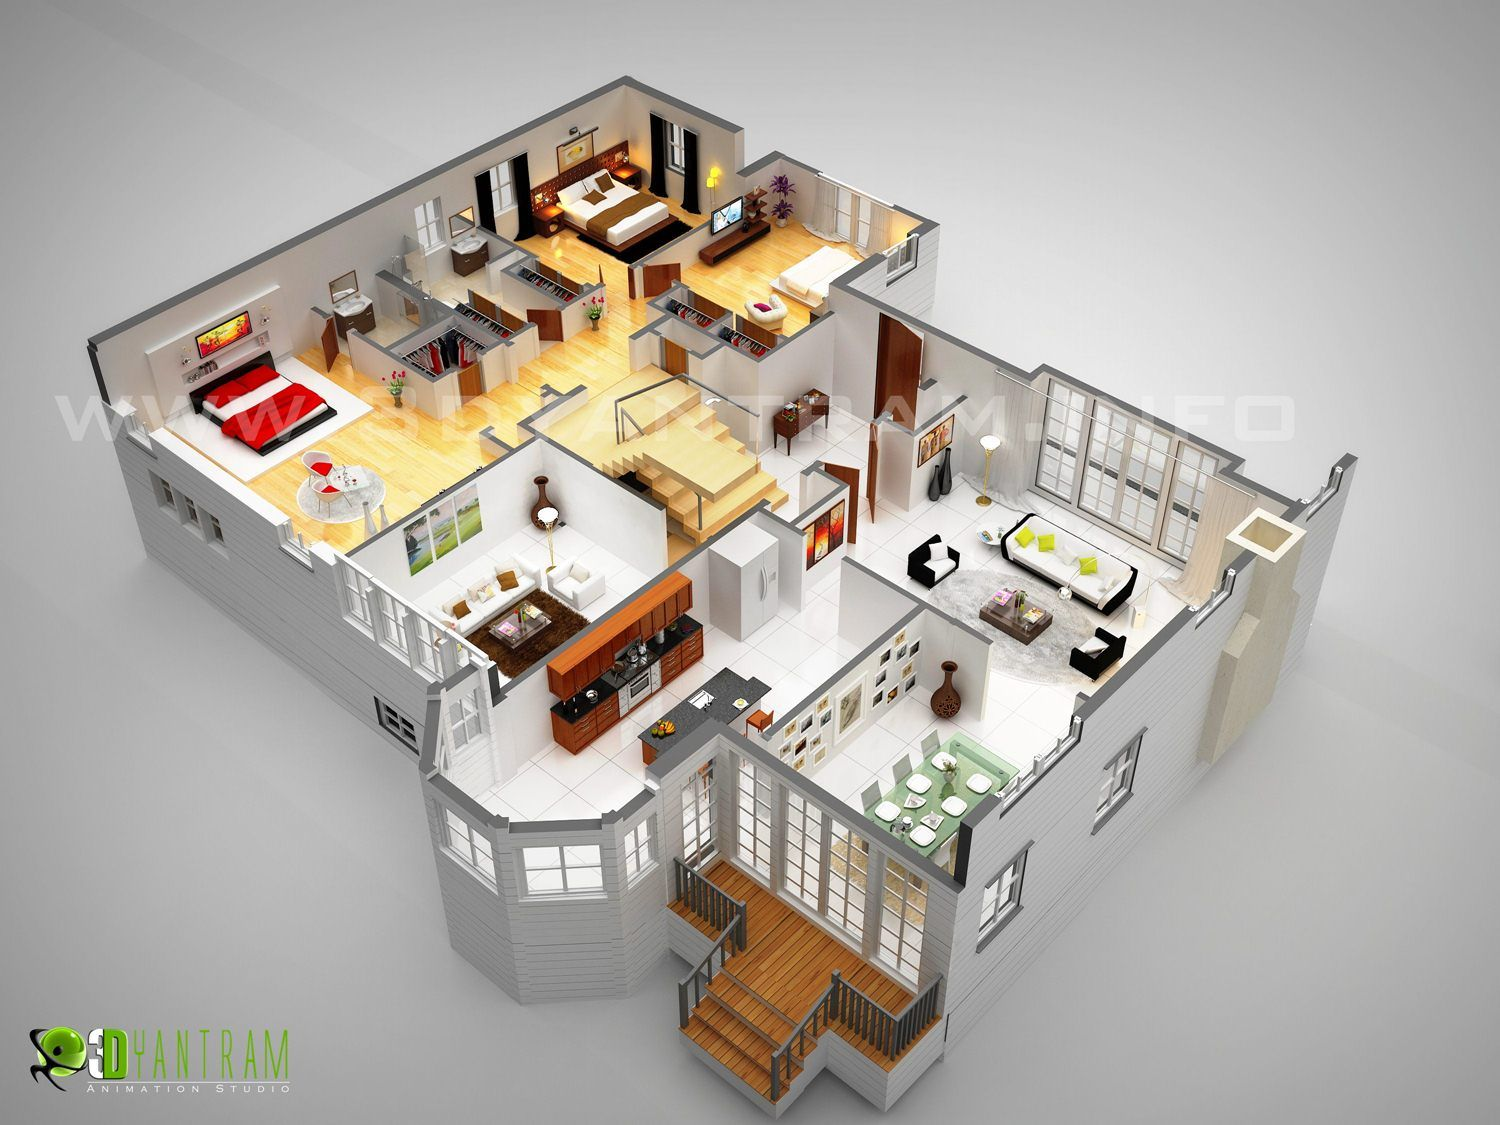 Laxurious residential 3d floor plan paris sims for House design plan 3d